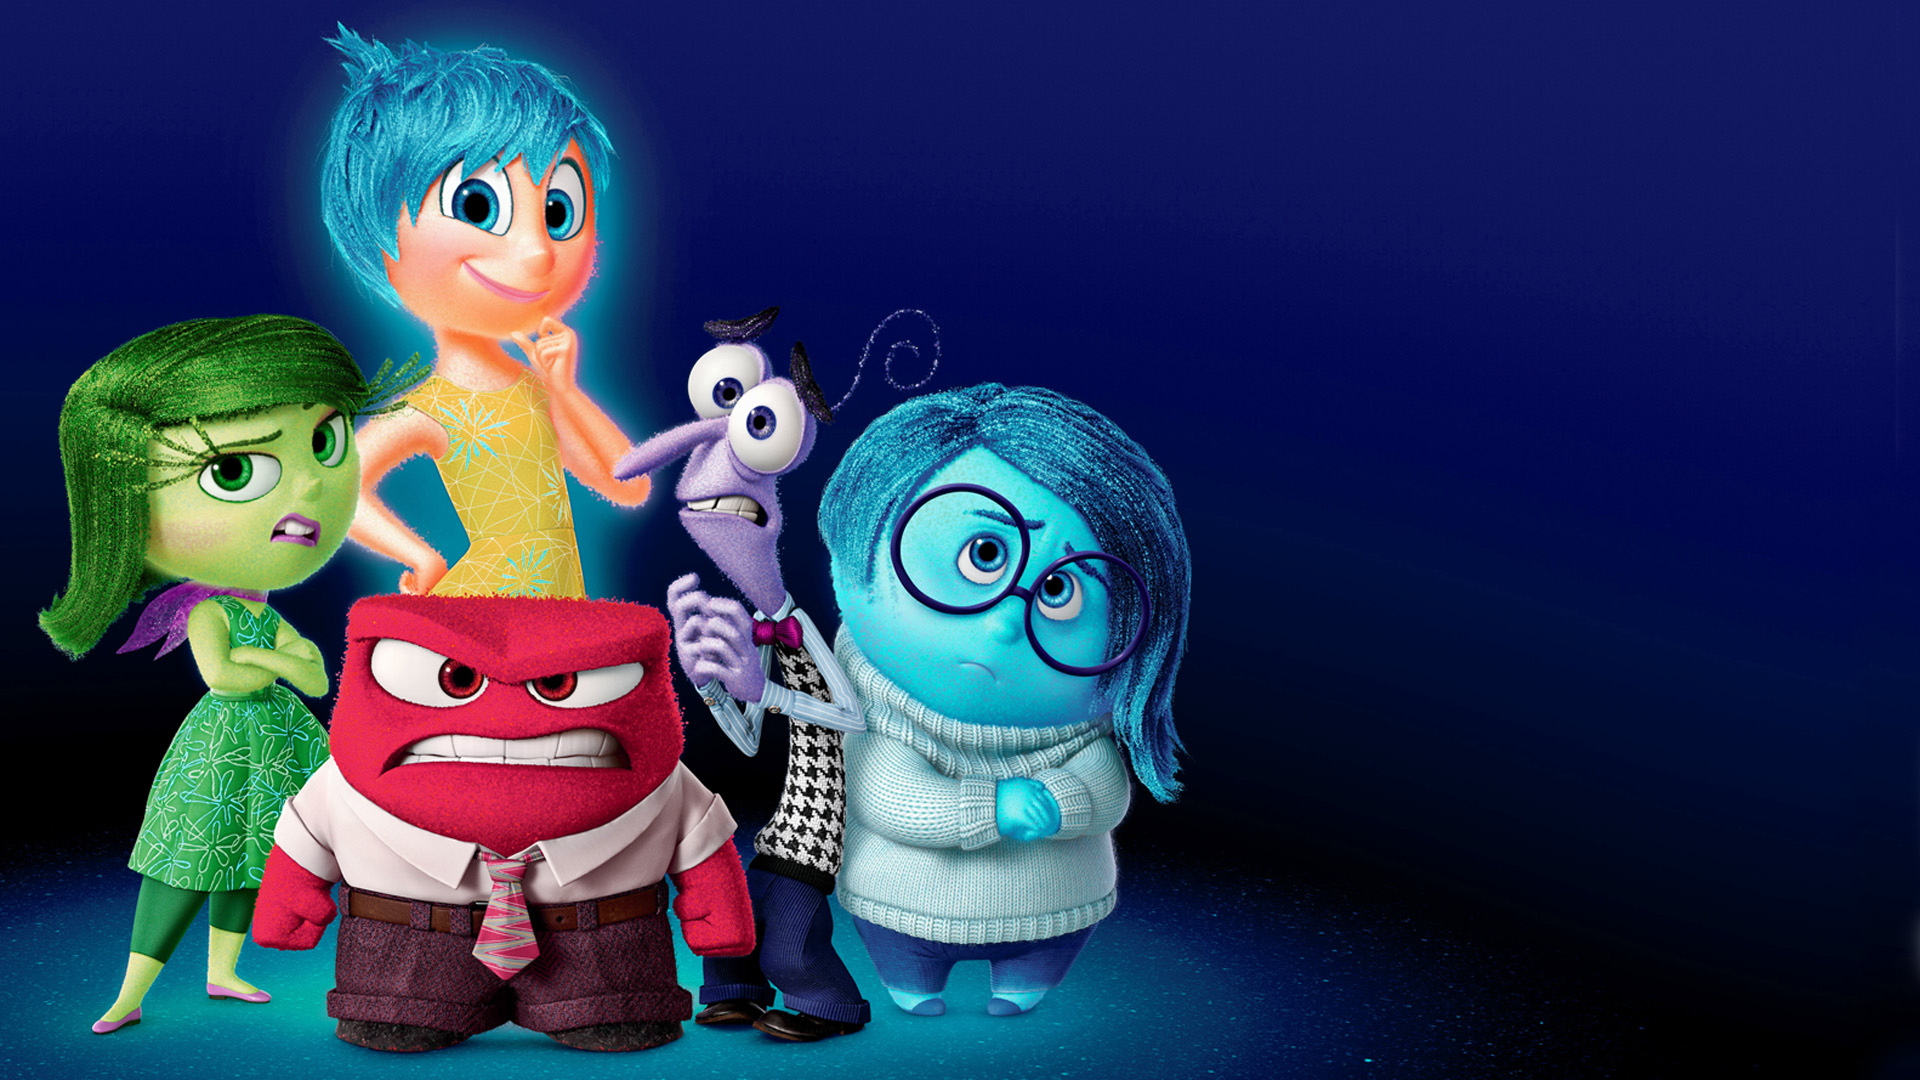 43 ] Pixar Inside Out Wallpaper On WallpaperSafari